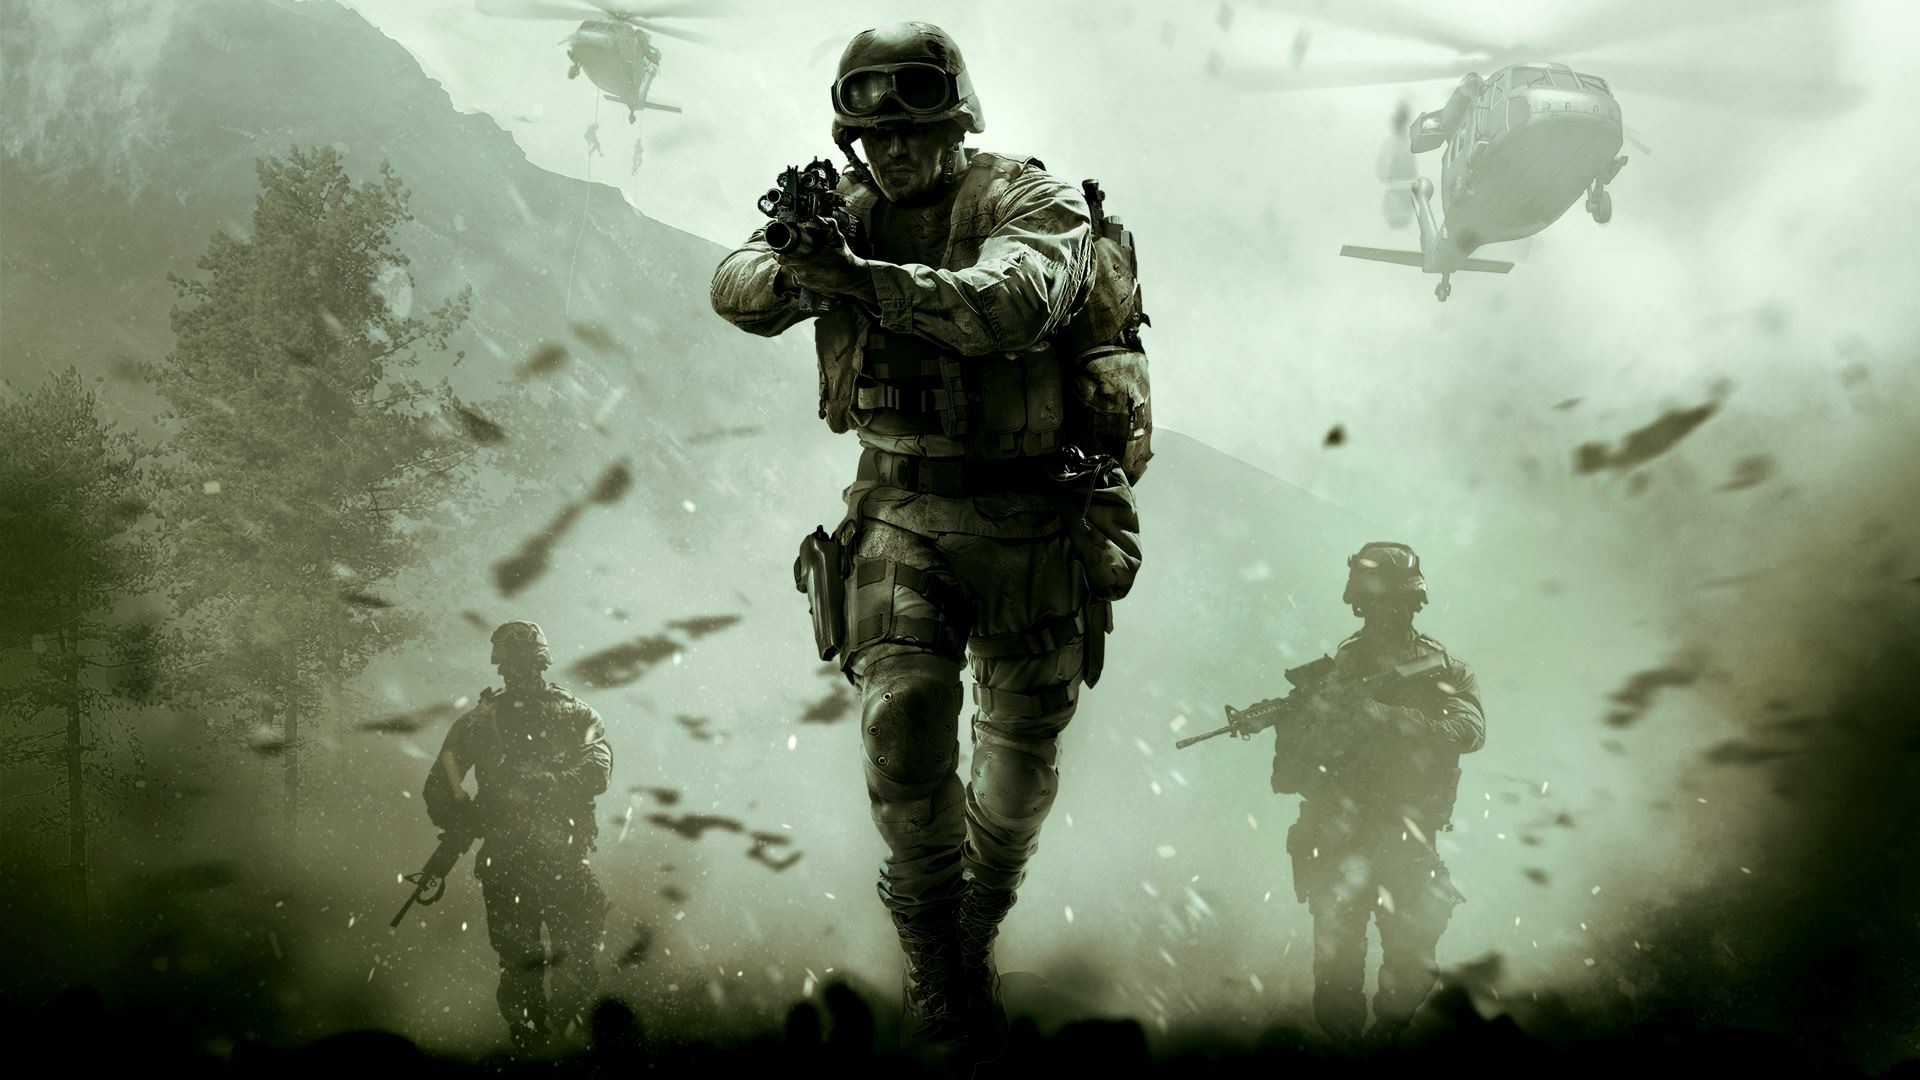 2048x1152 Call Of Duty Black Ops 2 Wallpaper New Call Duty Black Ops Ii Wallpapers Wallpaper Cave